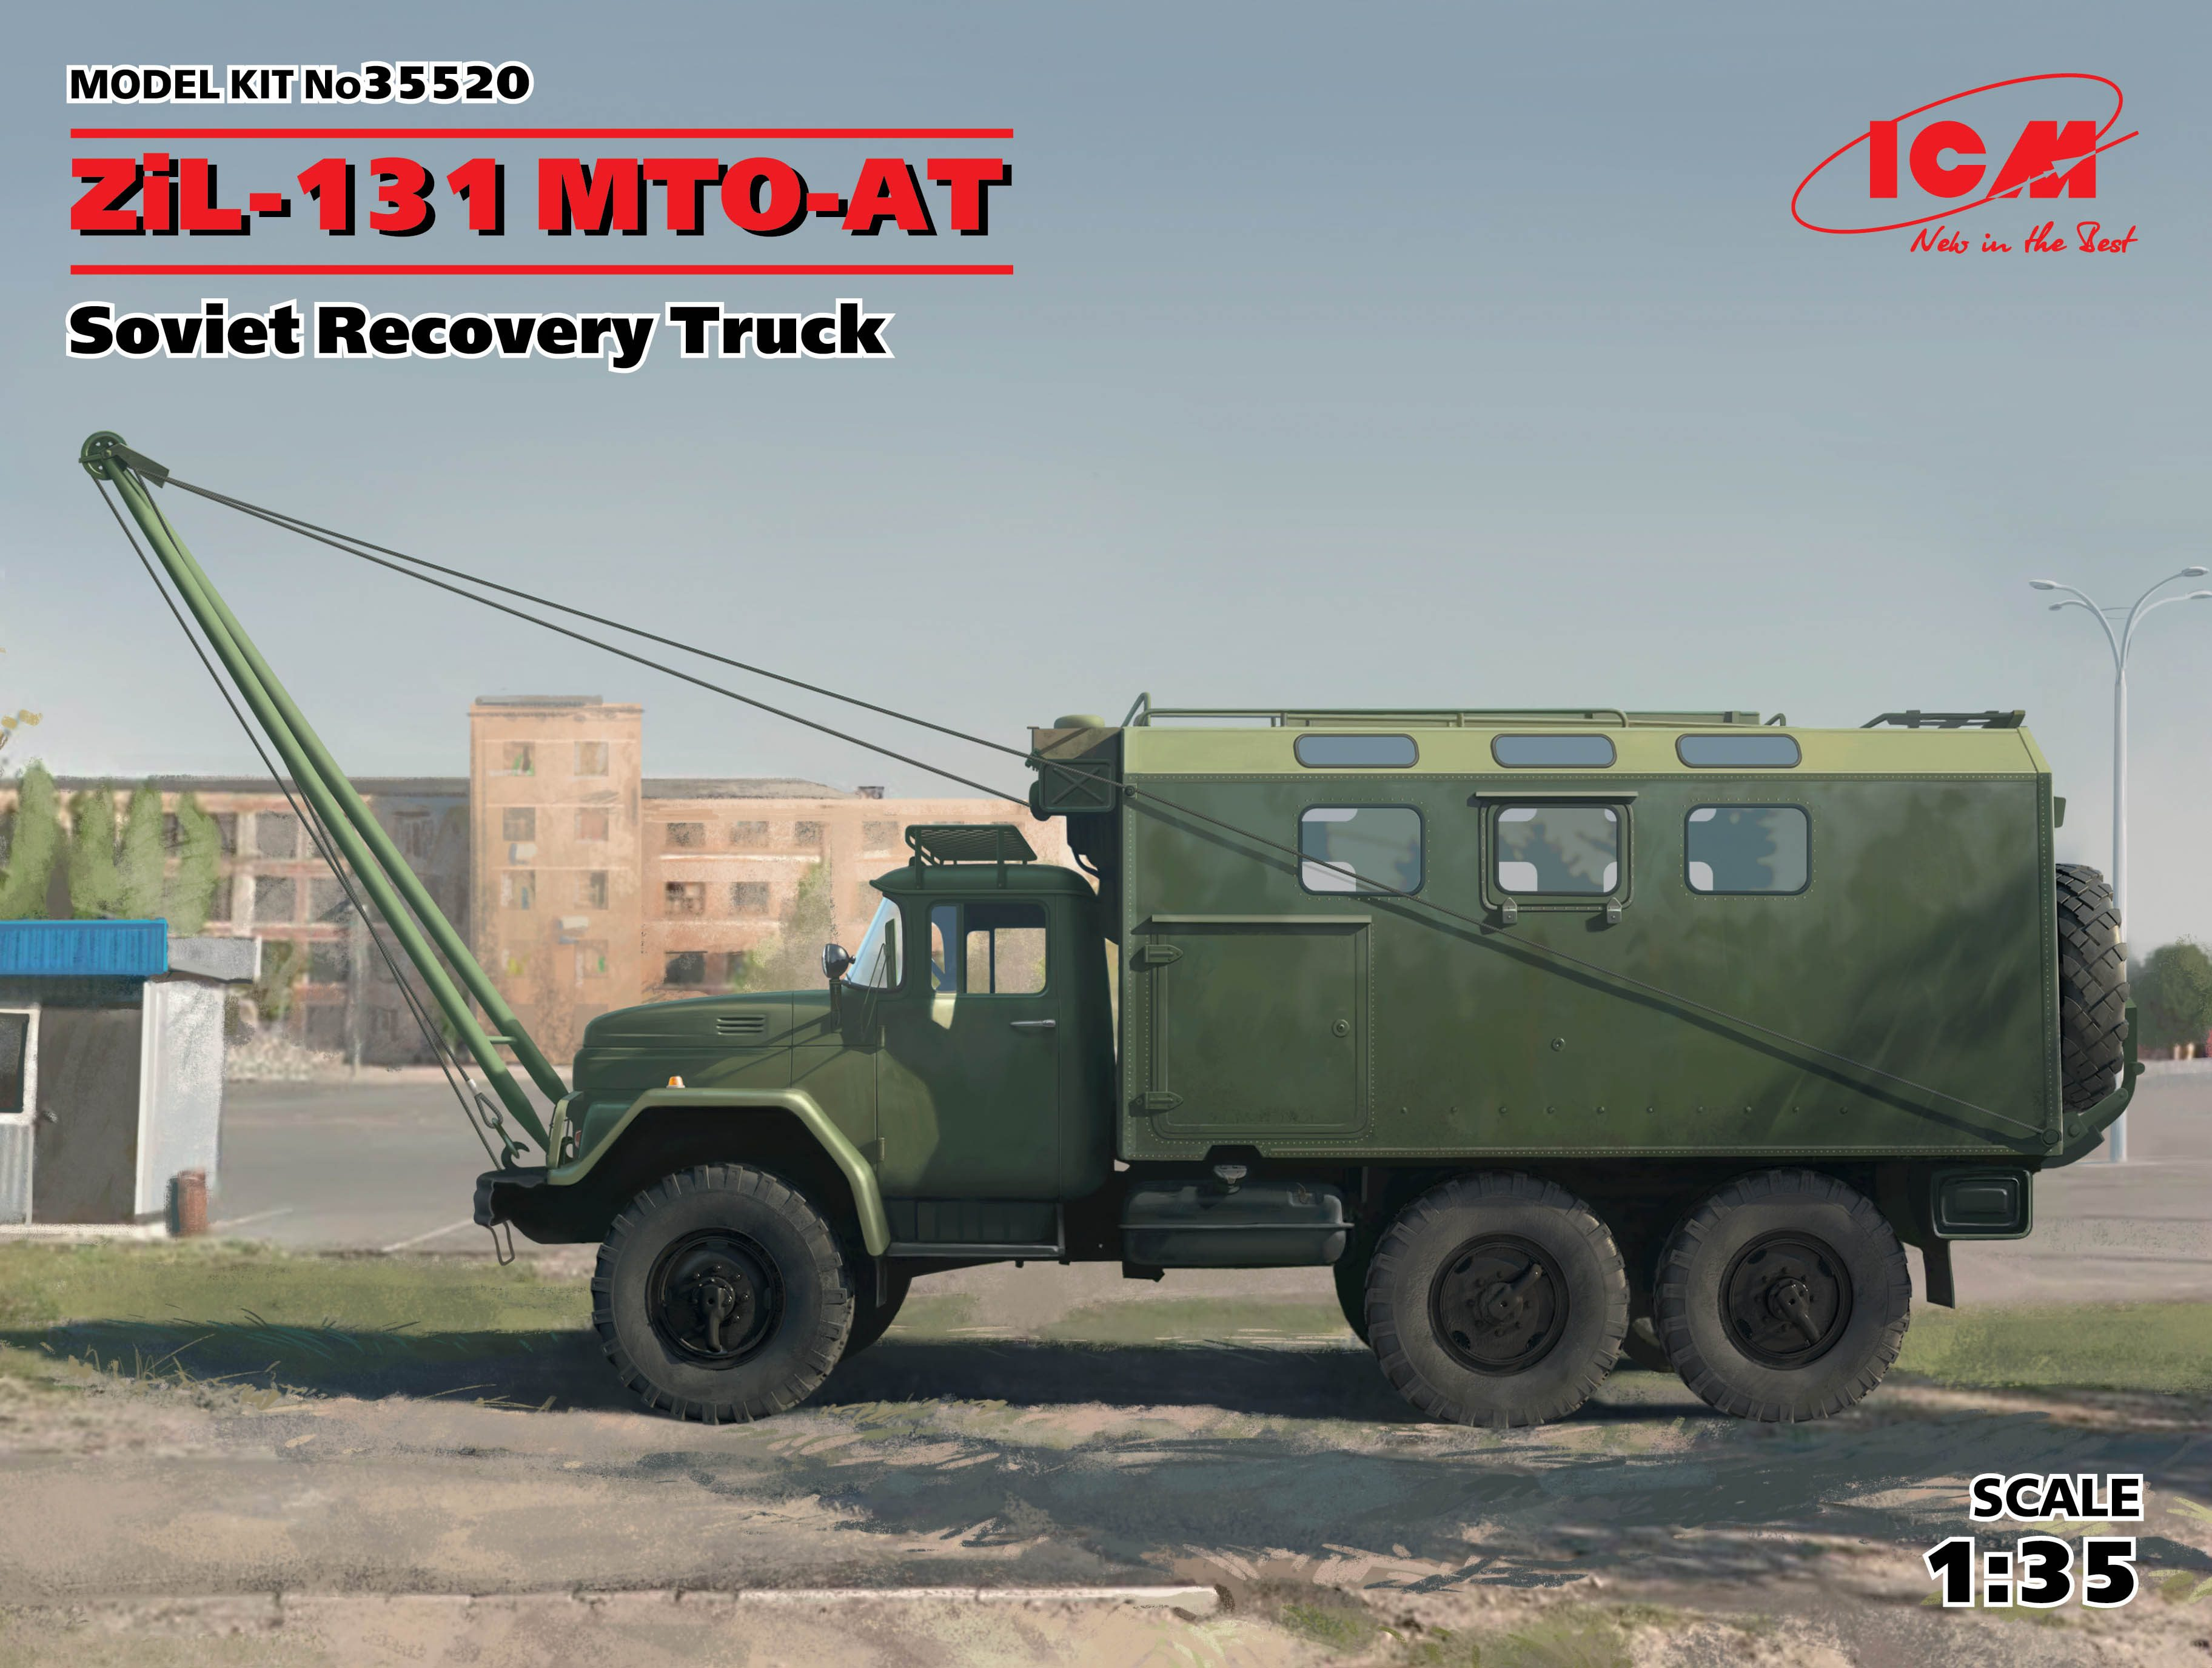 ICM 1/35 ZiL-131 MTO-AT, Soviet Recovery Truck # 35520